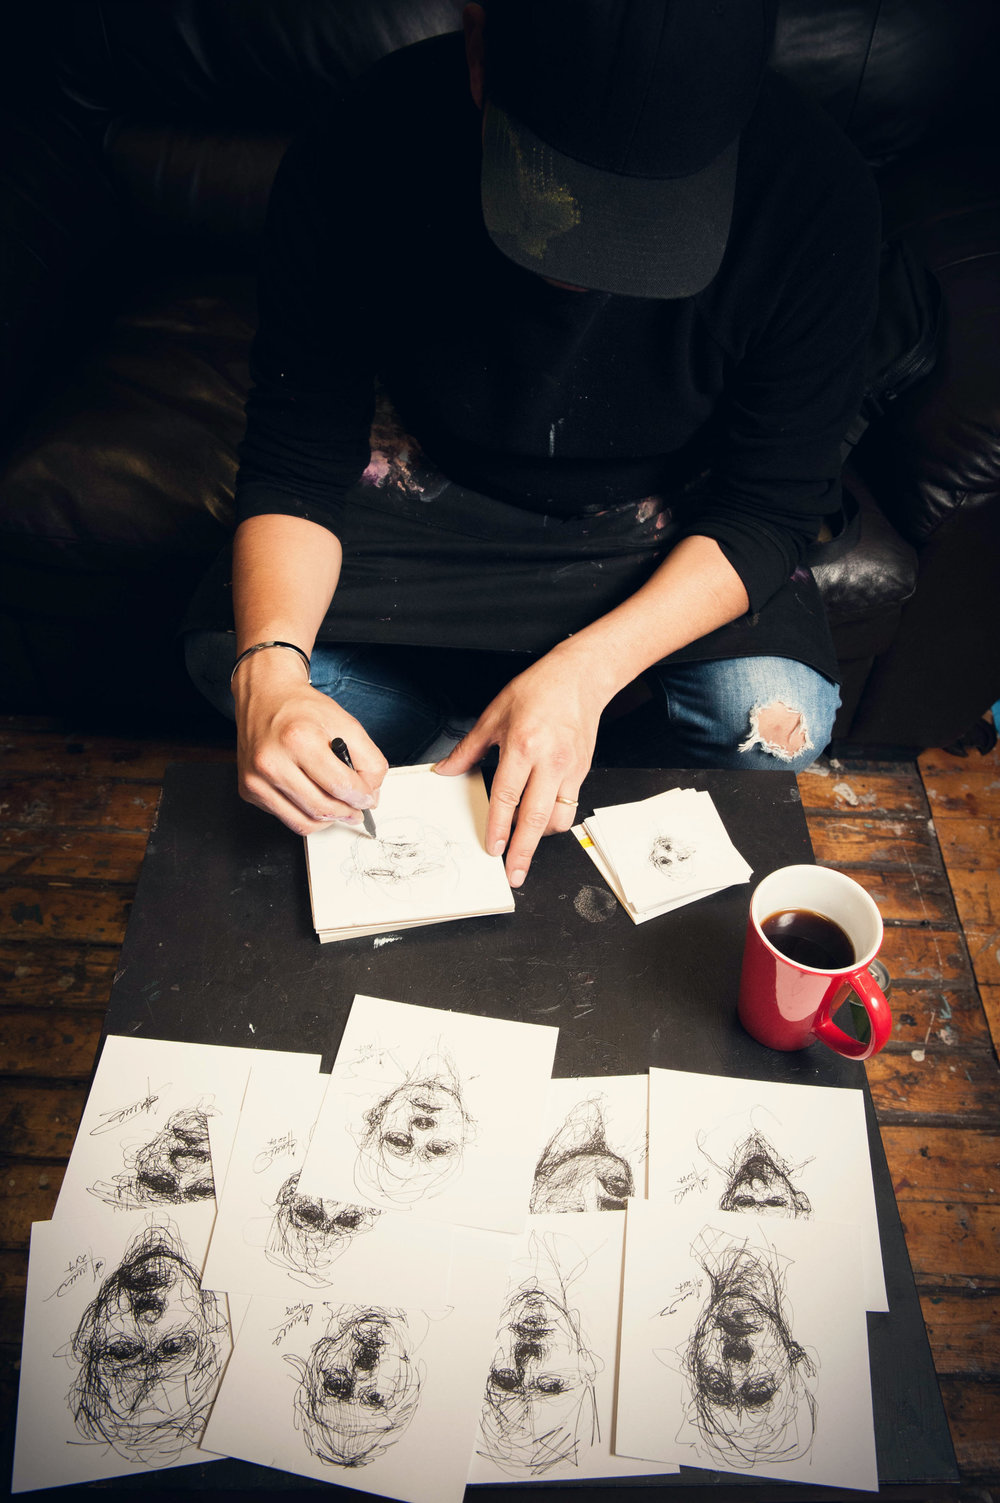 Drawing small scale sketches. Carlos Delgado in his studio in Toronto. Photo by Alex Usquiano.